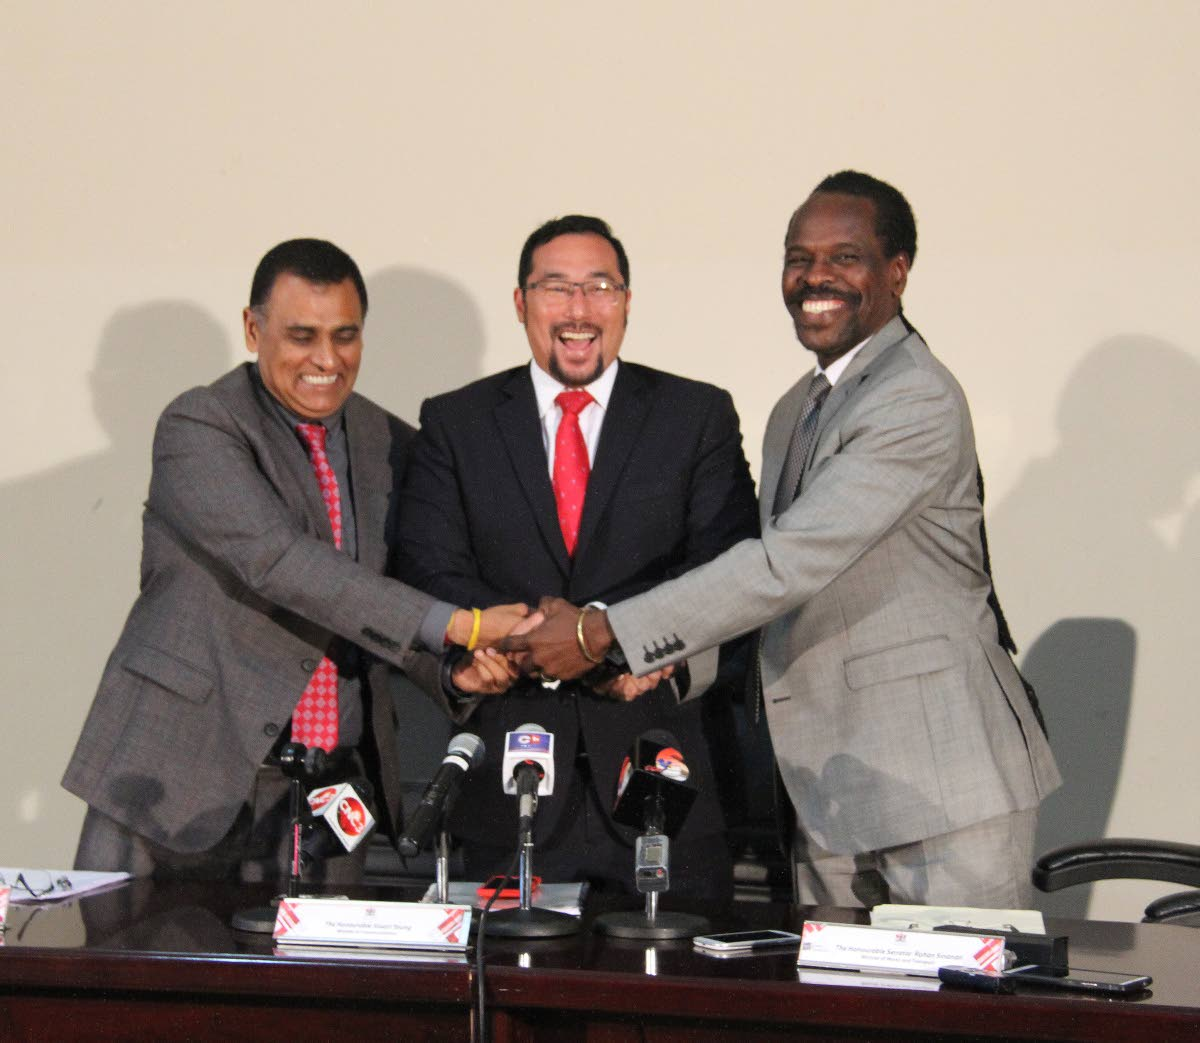 Works and Transport Minister Rohan Sinanan, National Security Minister Stuart Young and Ag Attorney General Fitzgerald Hinds join hands after a press conference yesterday at the Works and Transport ministry in Port of Spain.